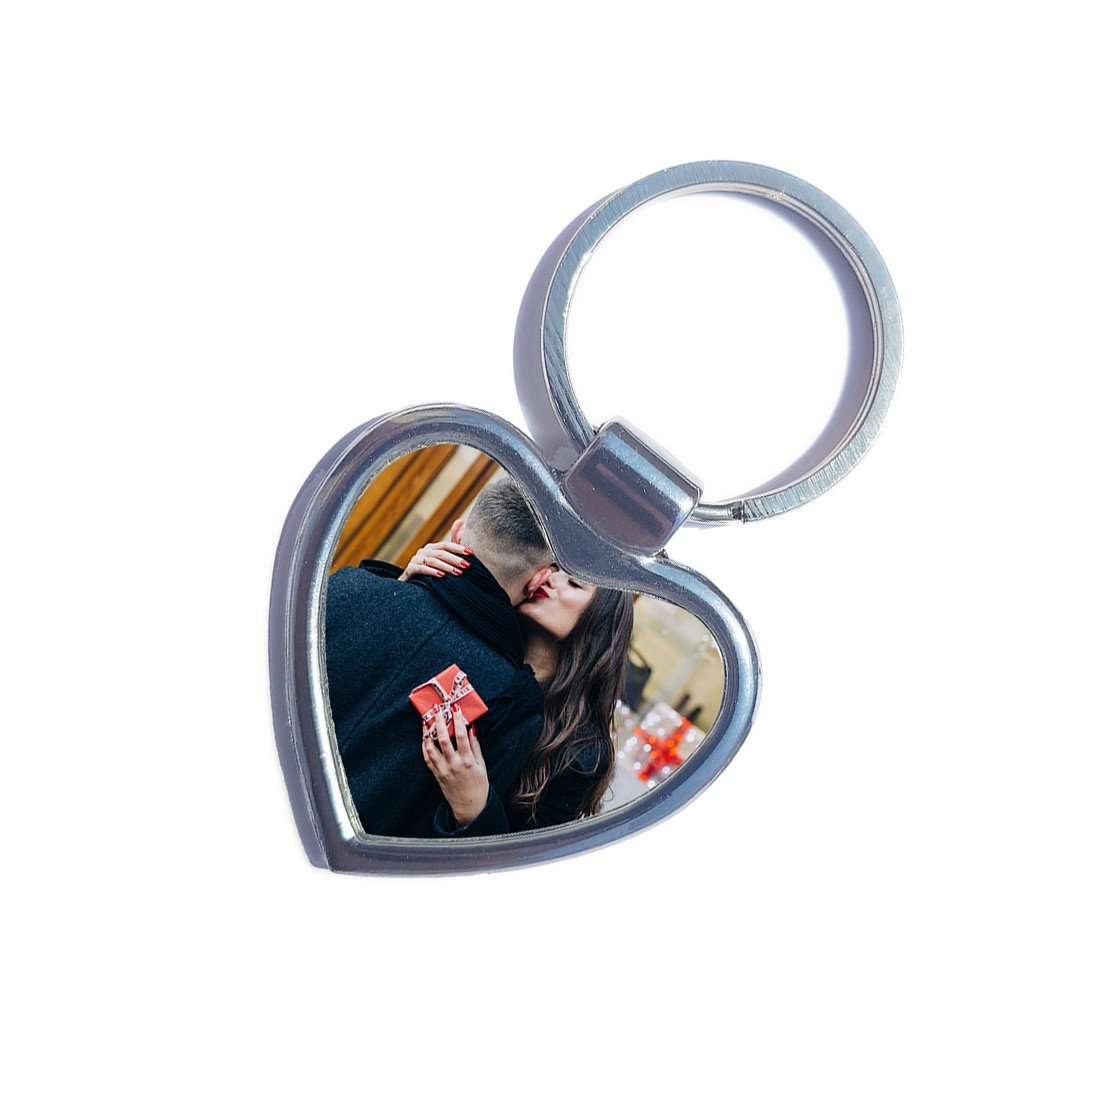 Heart 2 Sided Photo Print Metal Keychain - Imagine Photo Art